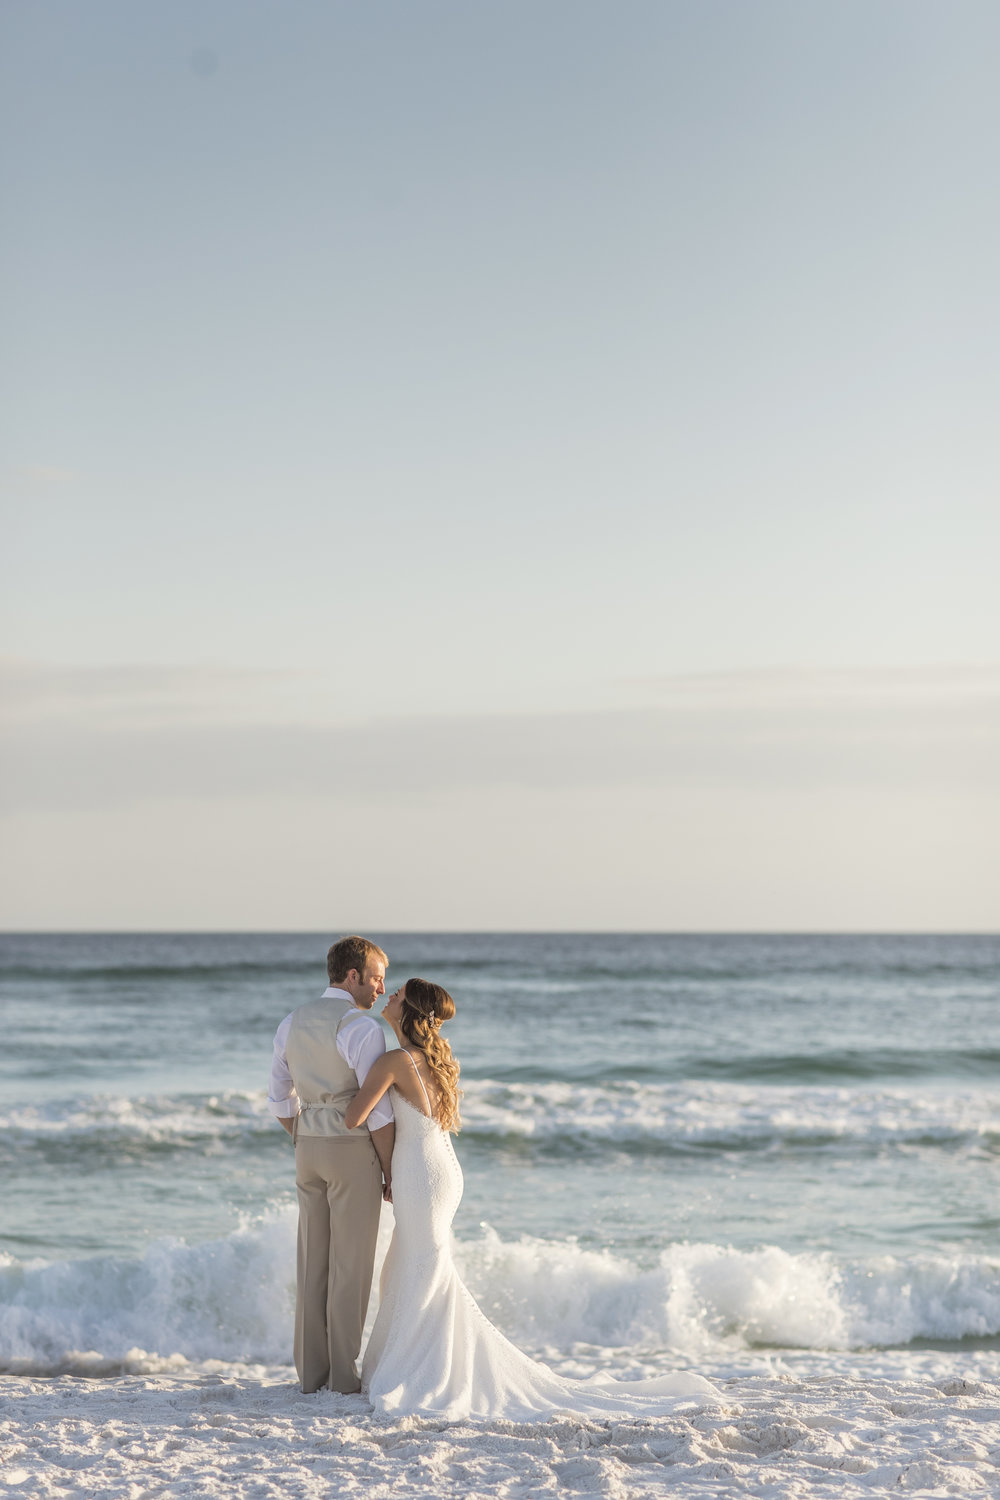 PREVIEWS-Kasey+Aaron-021.jpg